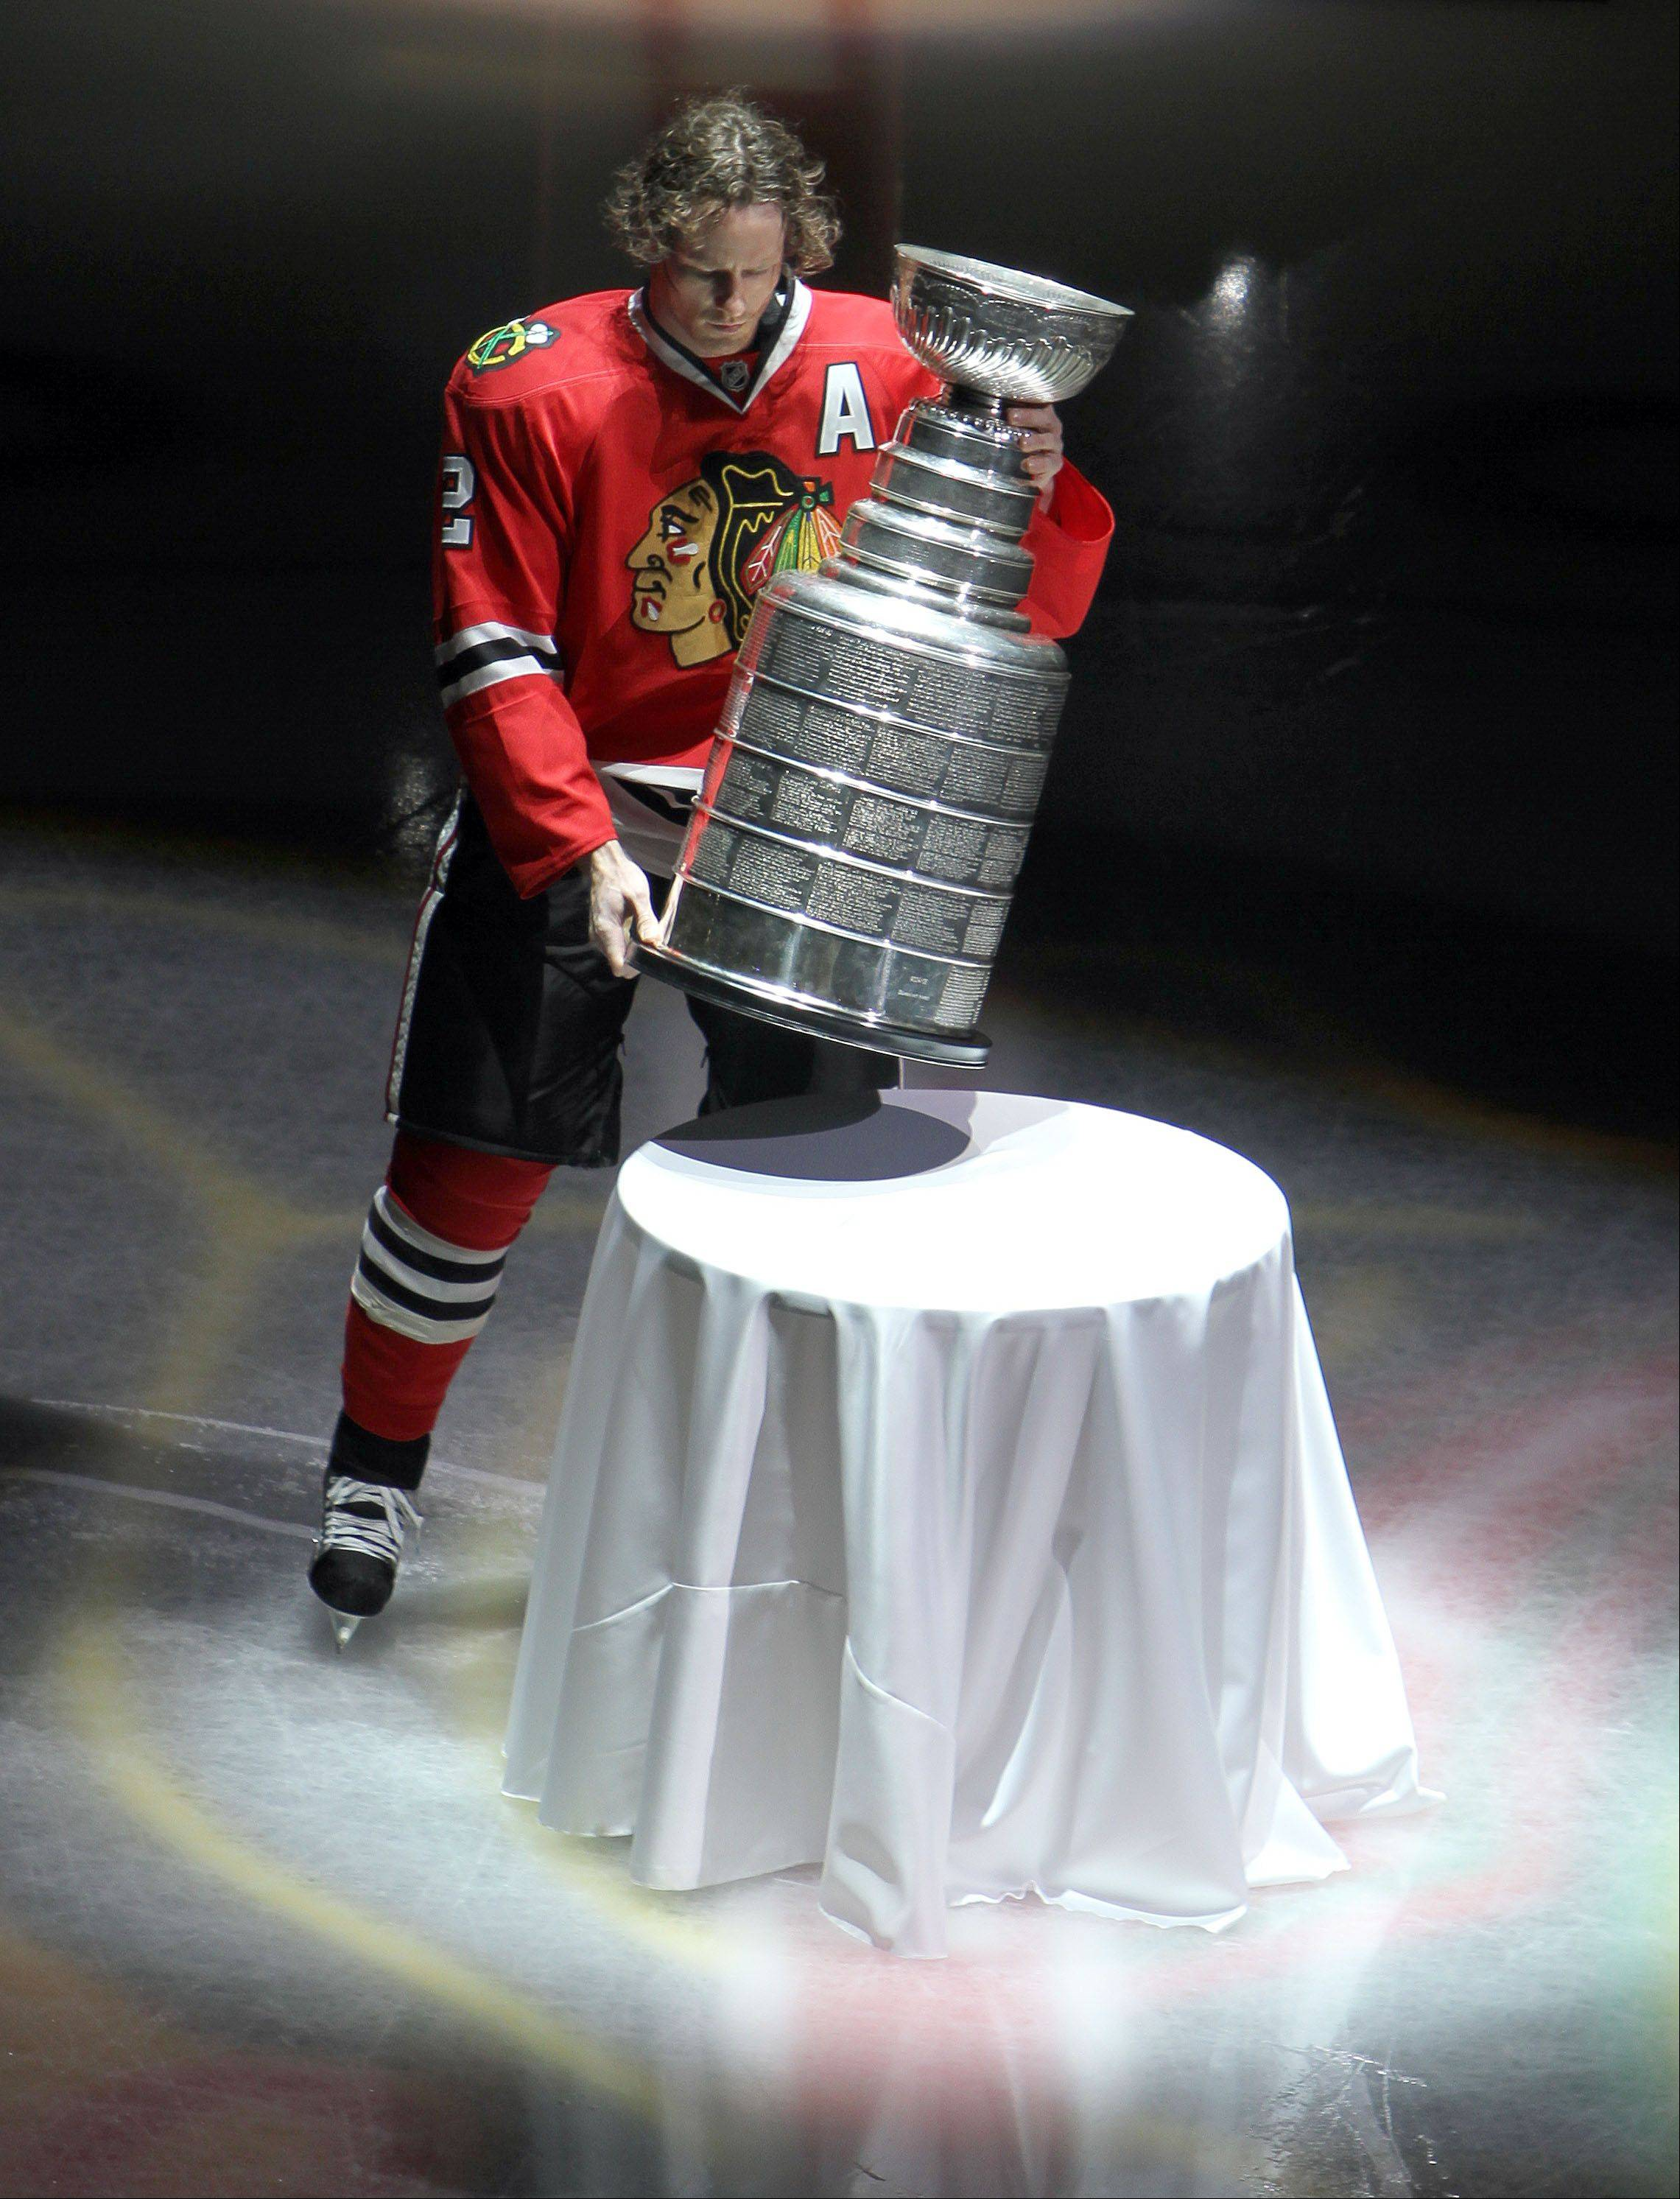 Steve Lundy/slundy@dailyherald.comChicago Blackhawks defenseman Duncan Keith carries in the Stanley Cup during the banner ceremony prior to their opening-day-game against the Washington Capitals Tuesday at the United Center in Chicago.